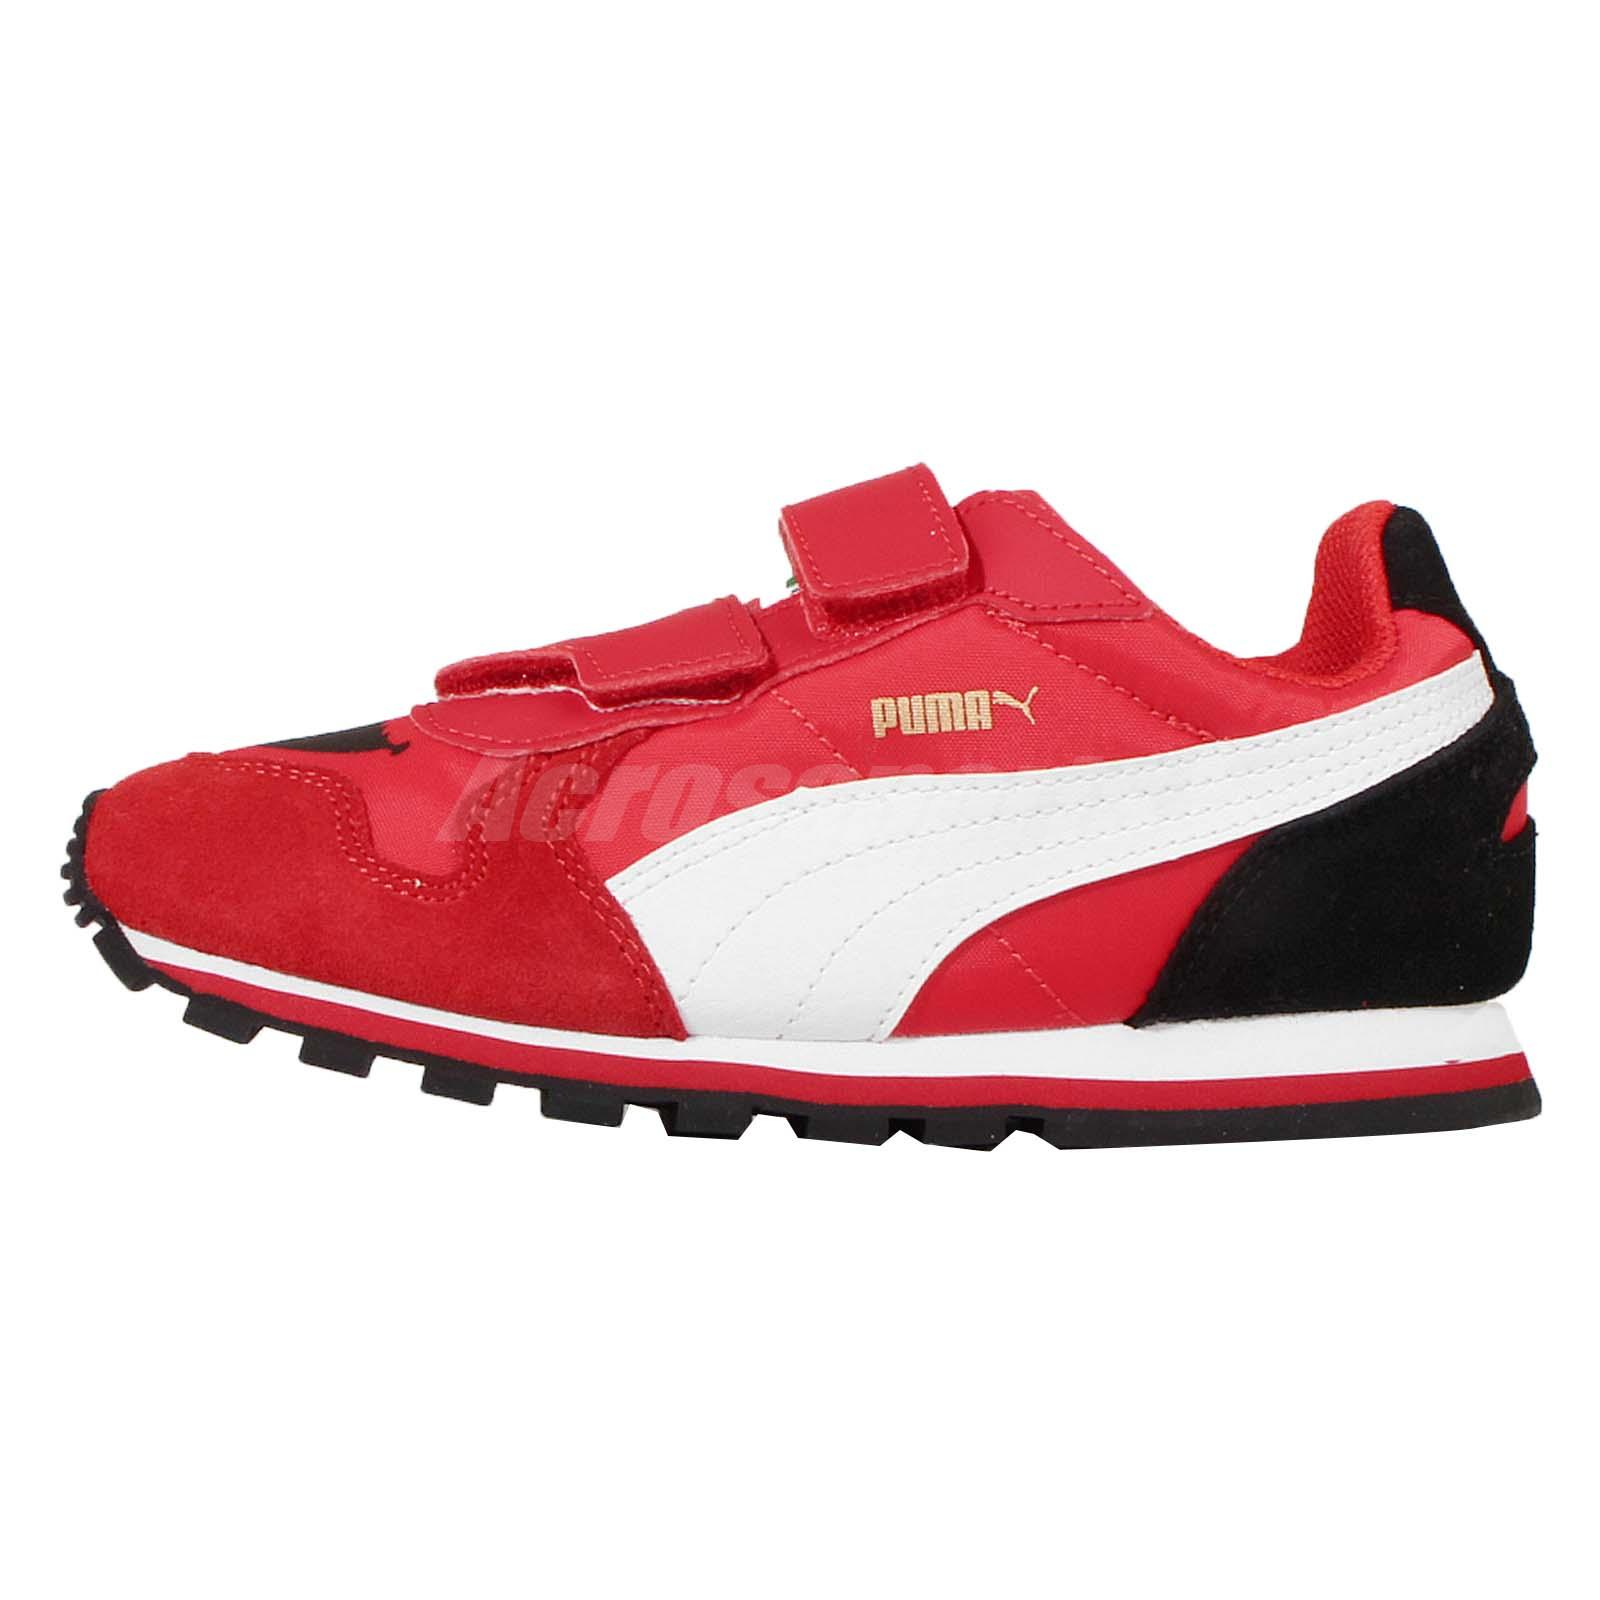 puma red running shoes on sale > OFF34% Discounts